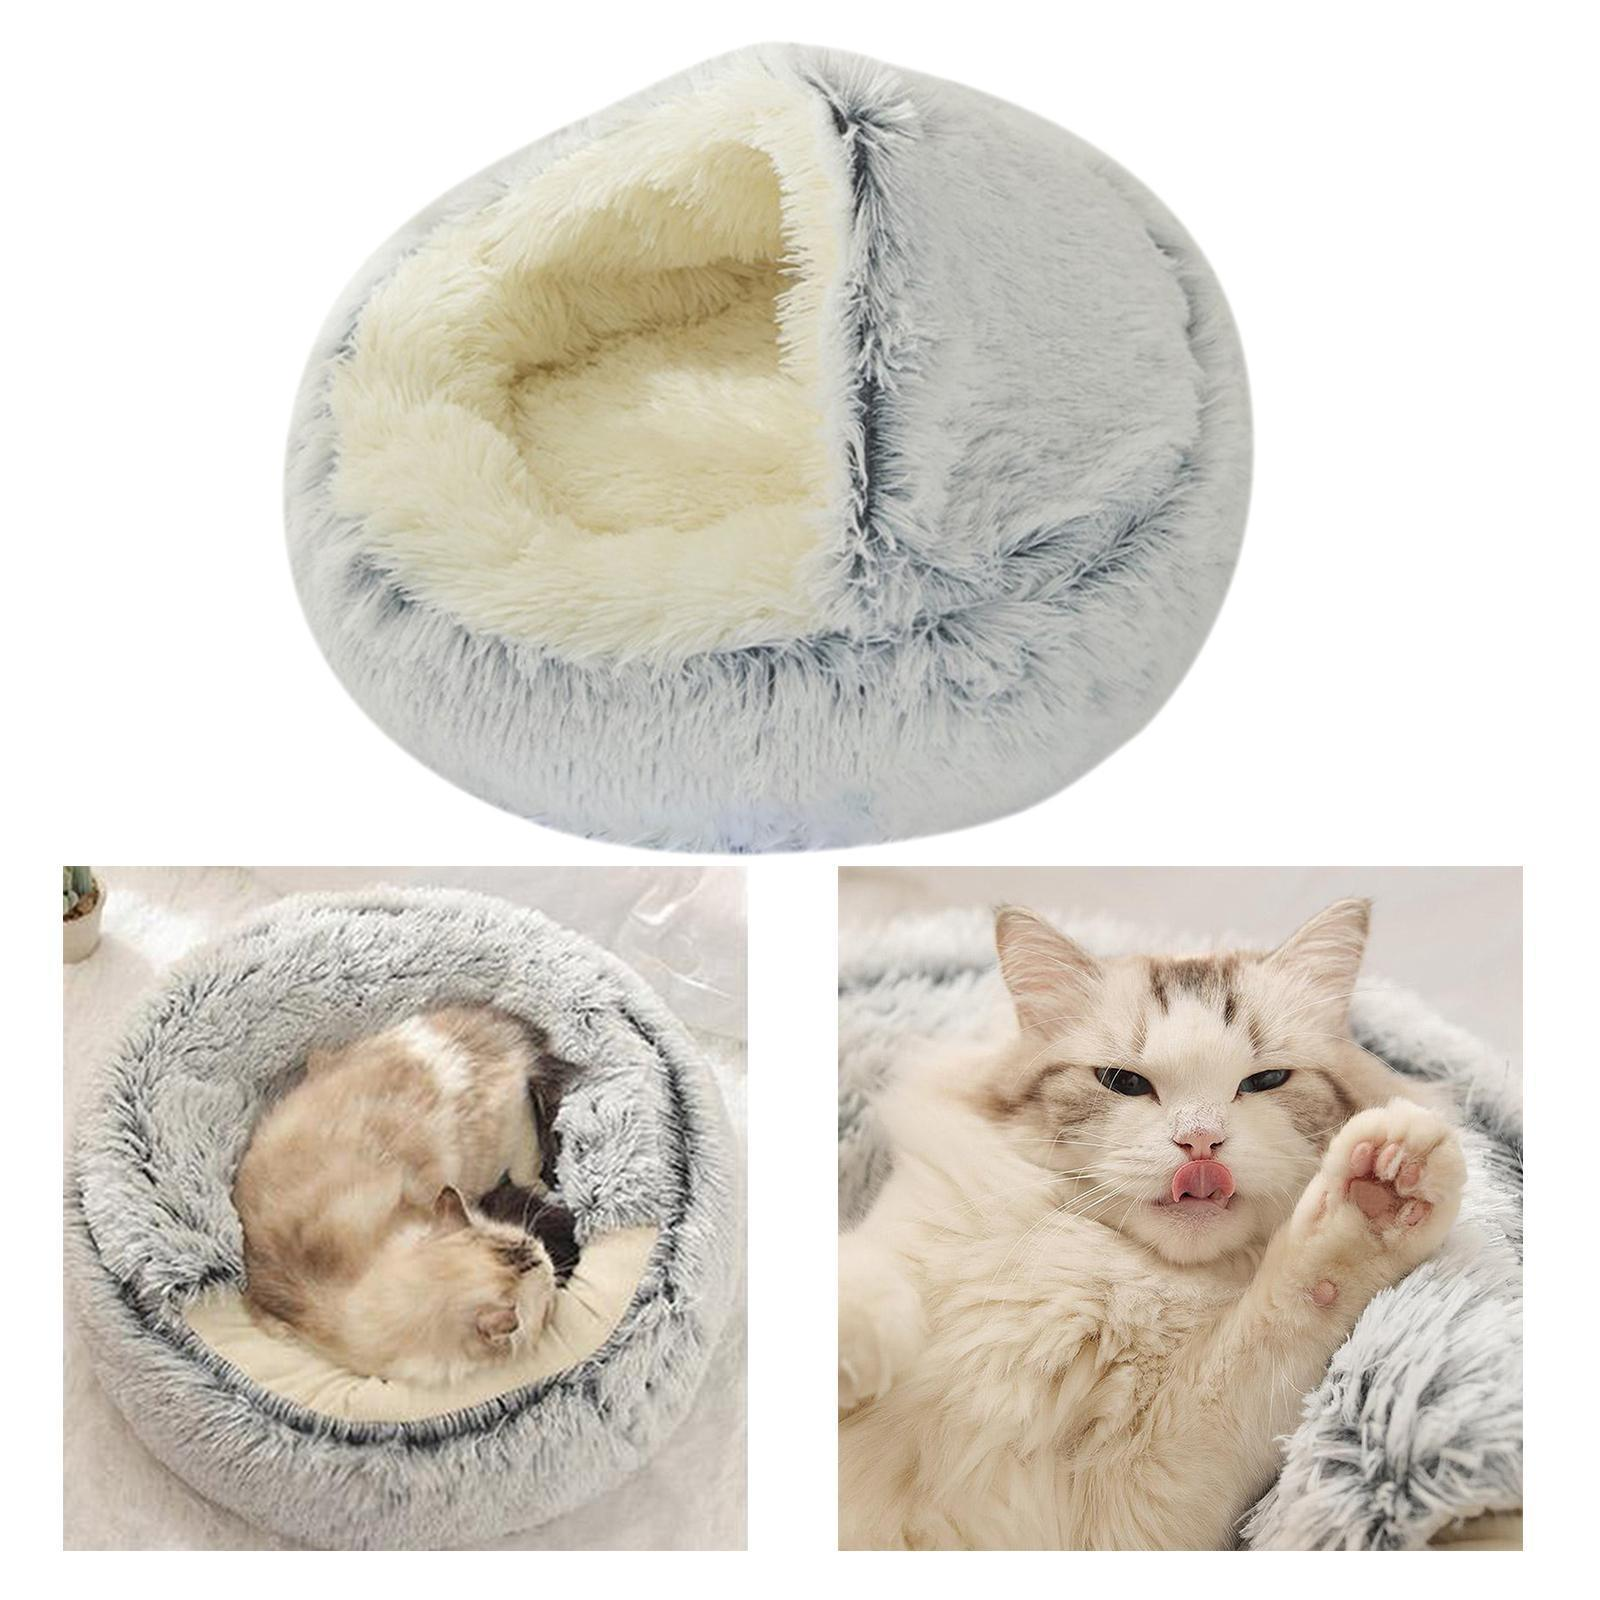 miniature 58 - Pet Chien Chat Calmant Lit Rond Nid Chaud En Peluche Confortable de Couchage